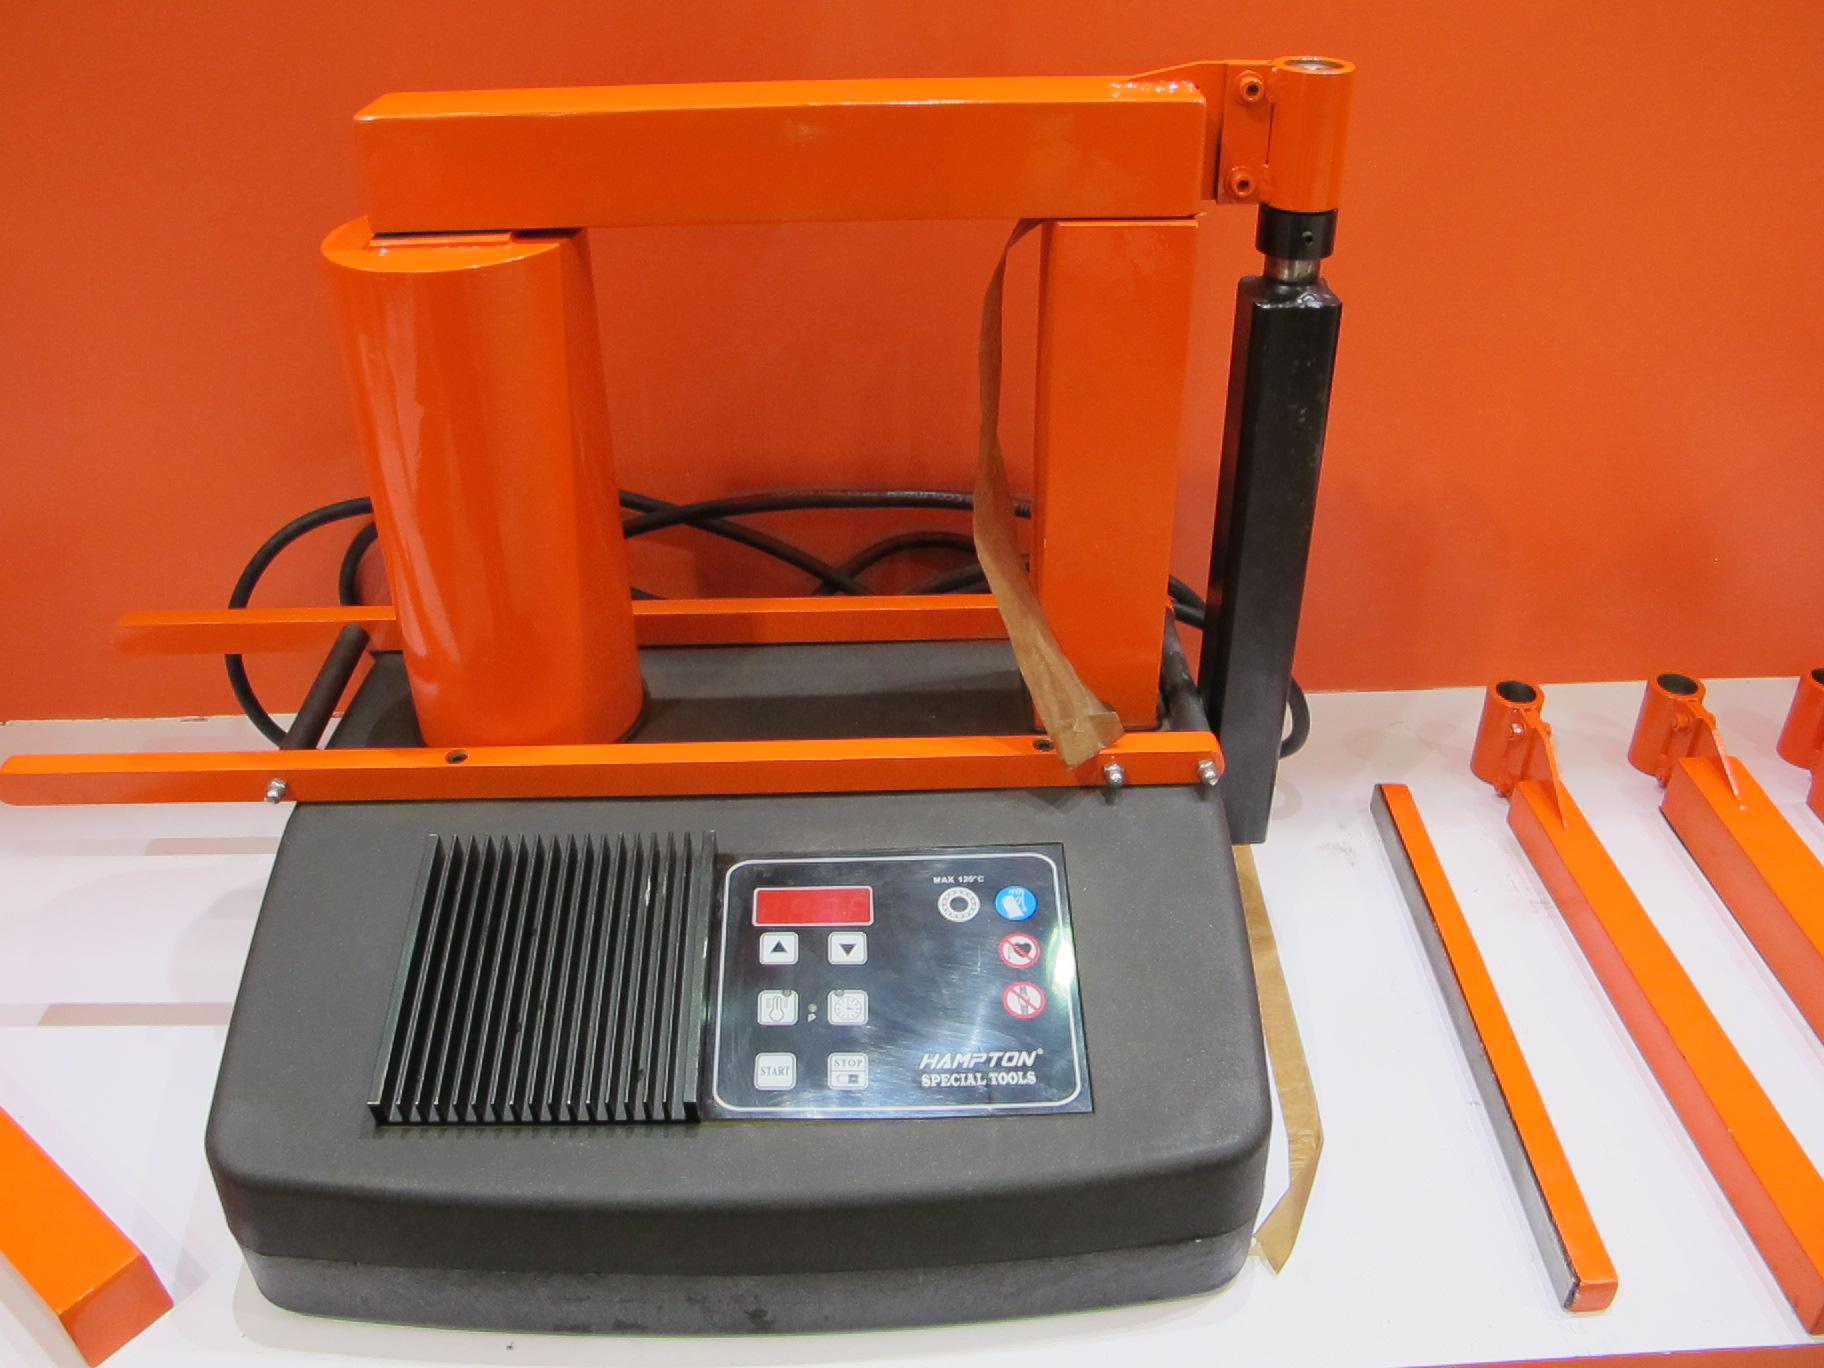 Copy Betex induction heater Bega Special Tools